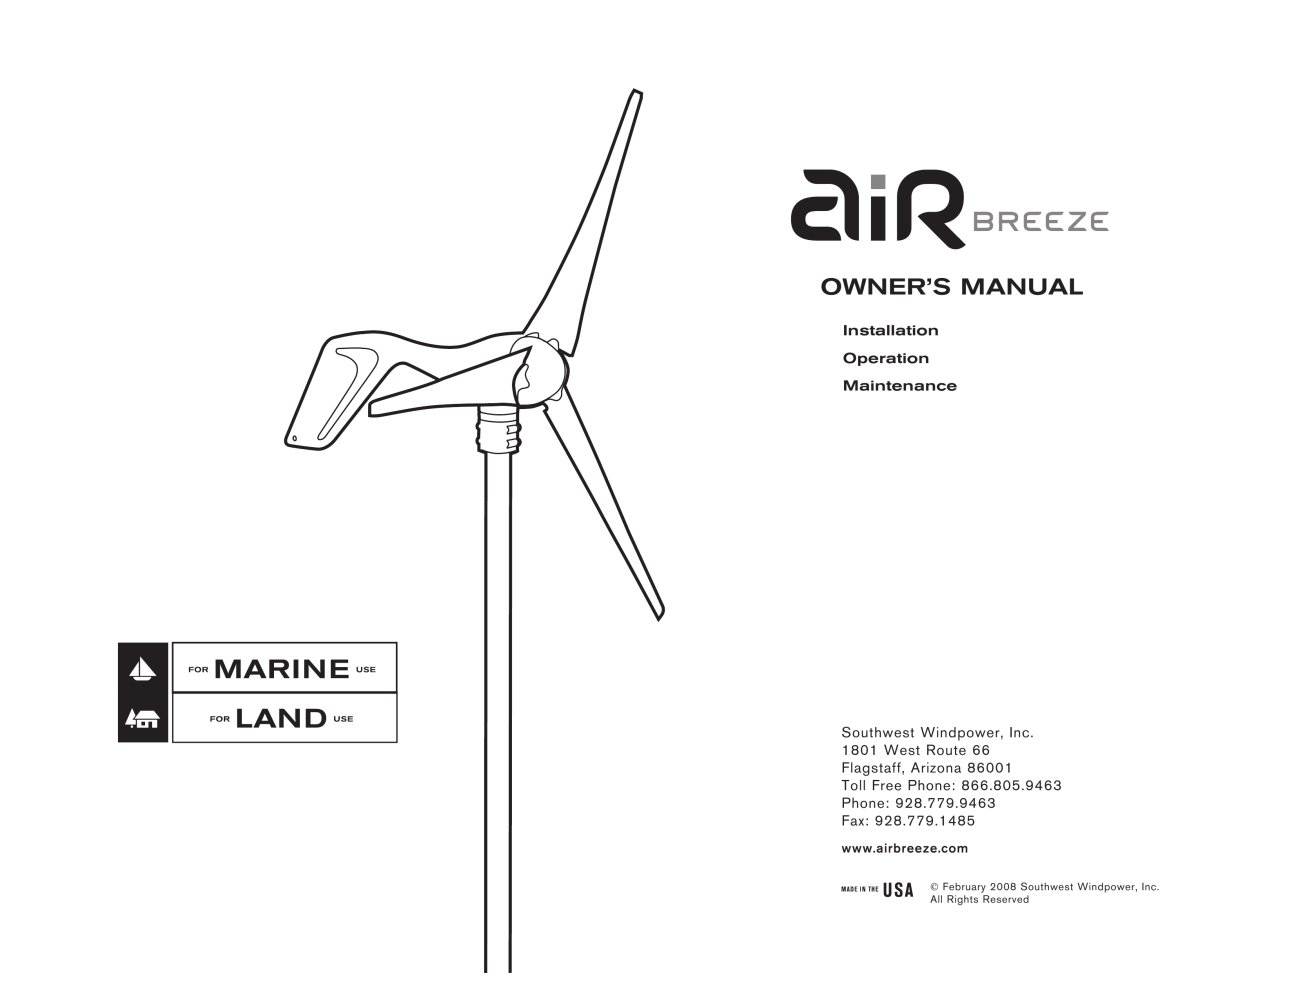 Air Breeze Land/Marine Owner's Manual - 1 / 32 Pages